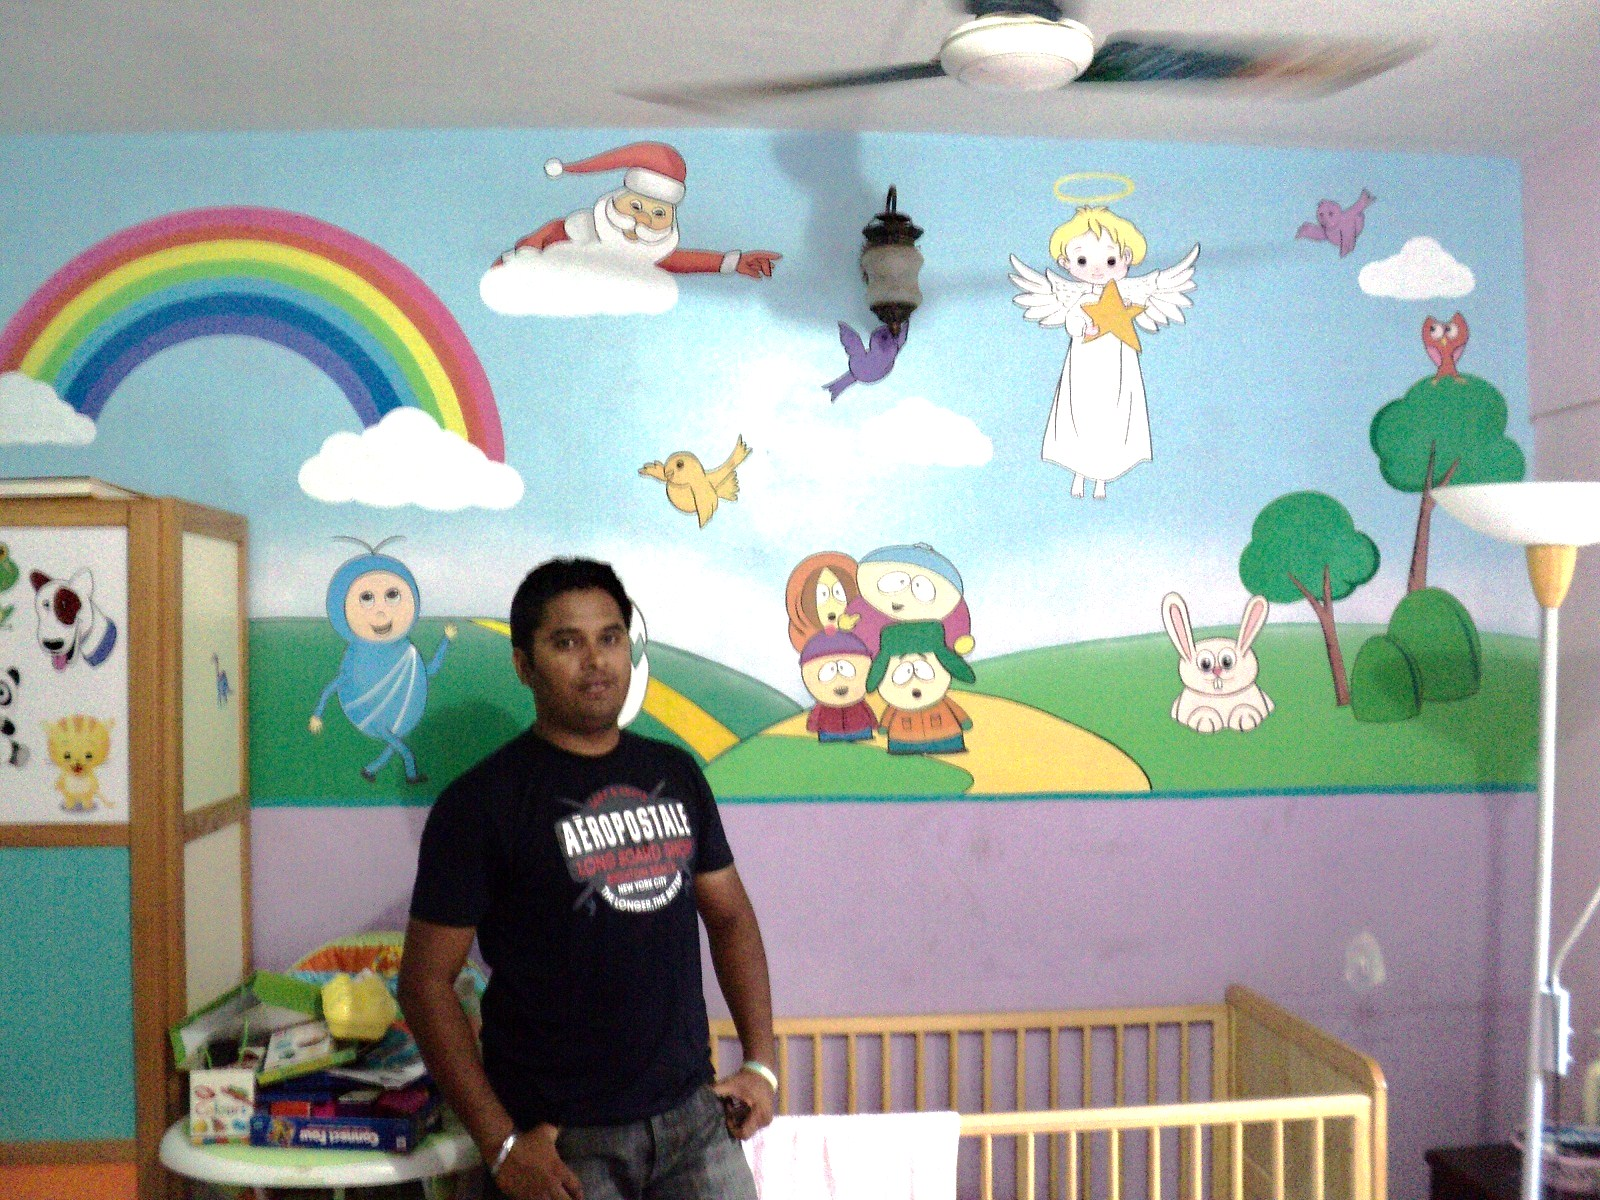 kids bedroom painting ideas wallpress 1080p hd desktop kids bedroom painting ideas day care kids classroom painting bandra